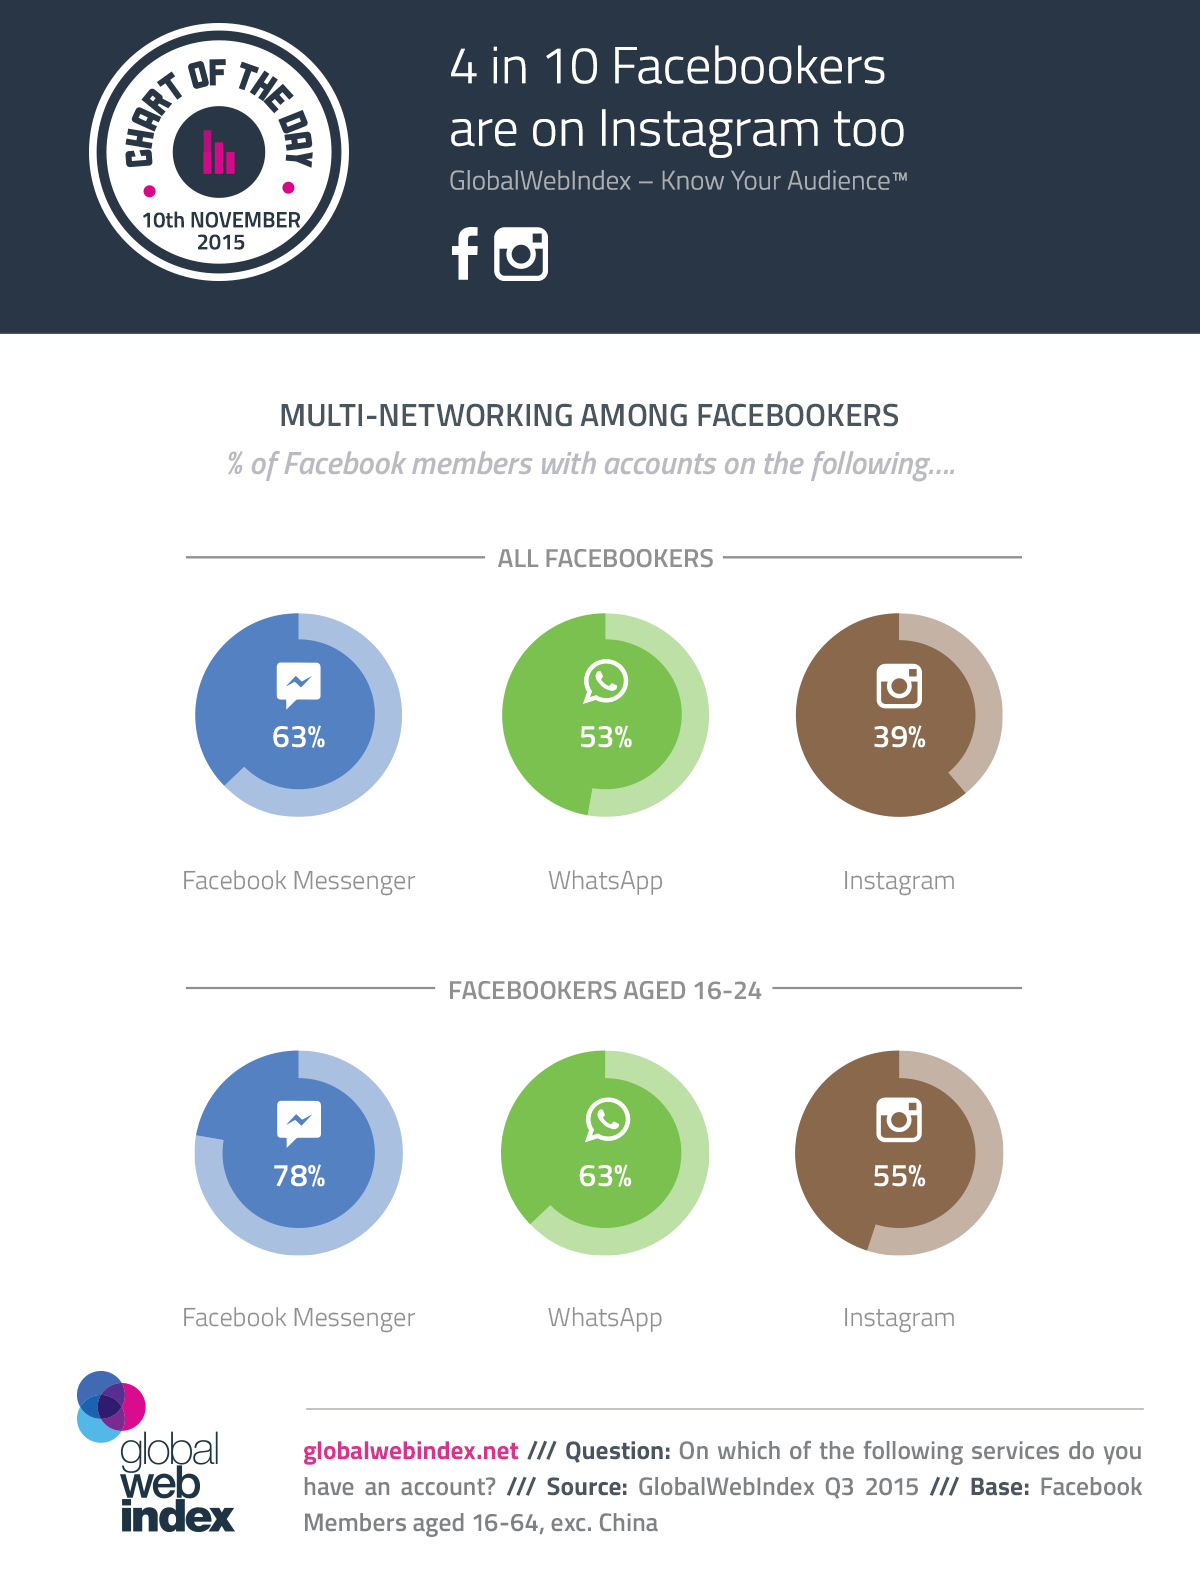 4 in 10 Facebookers are on Instagram too